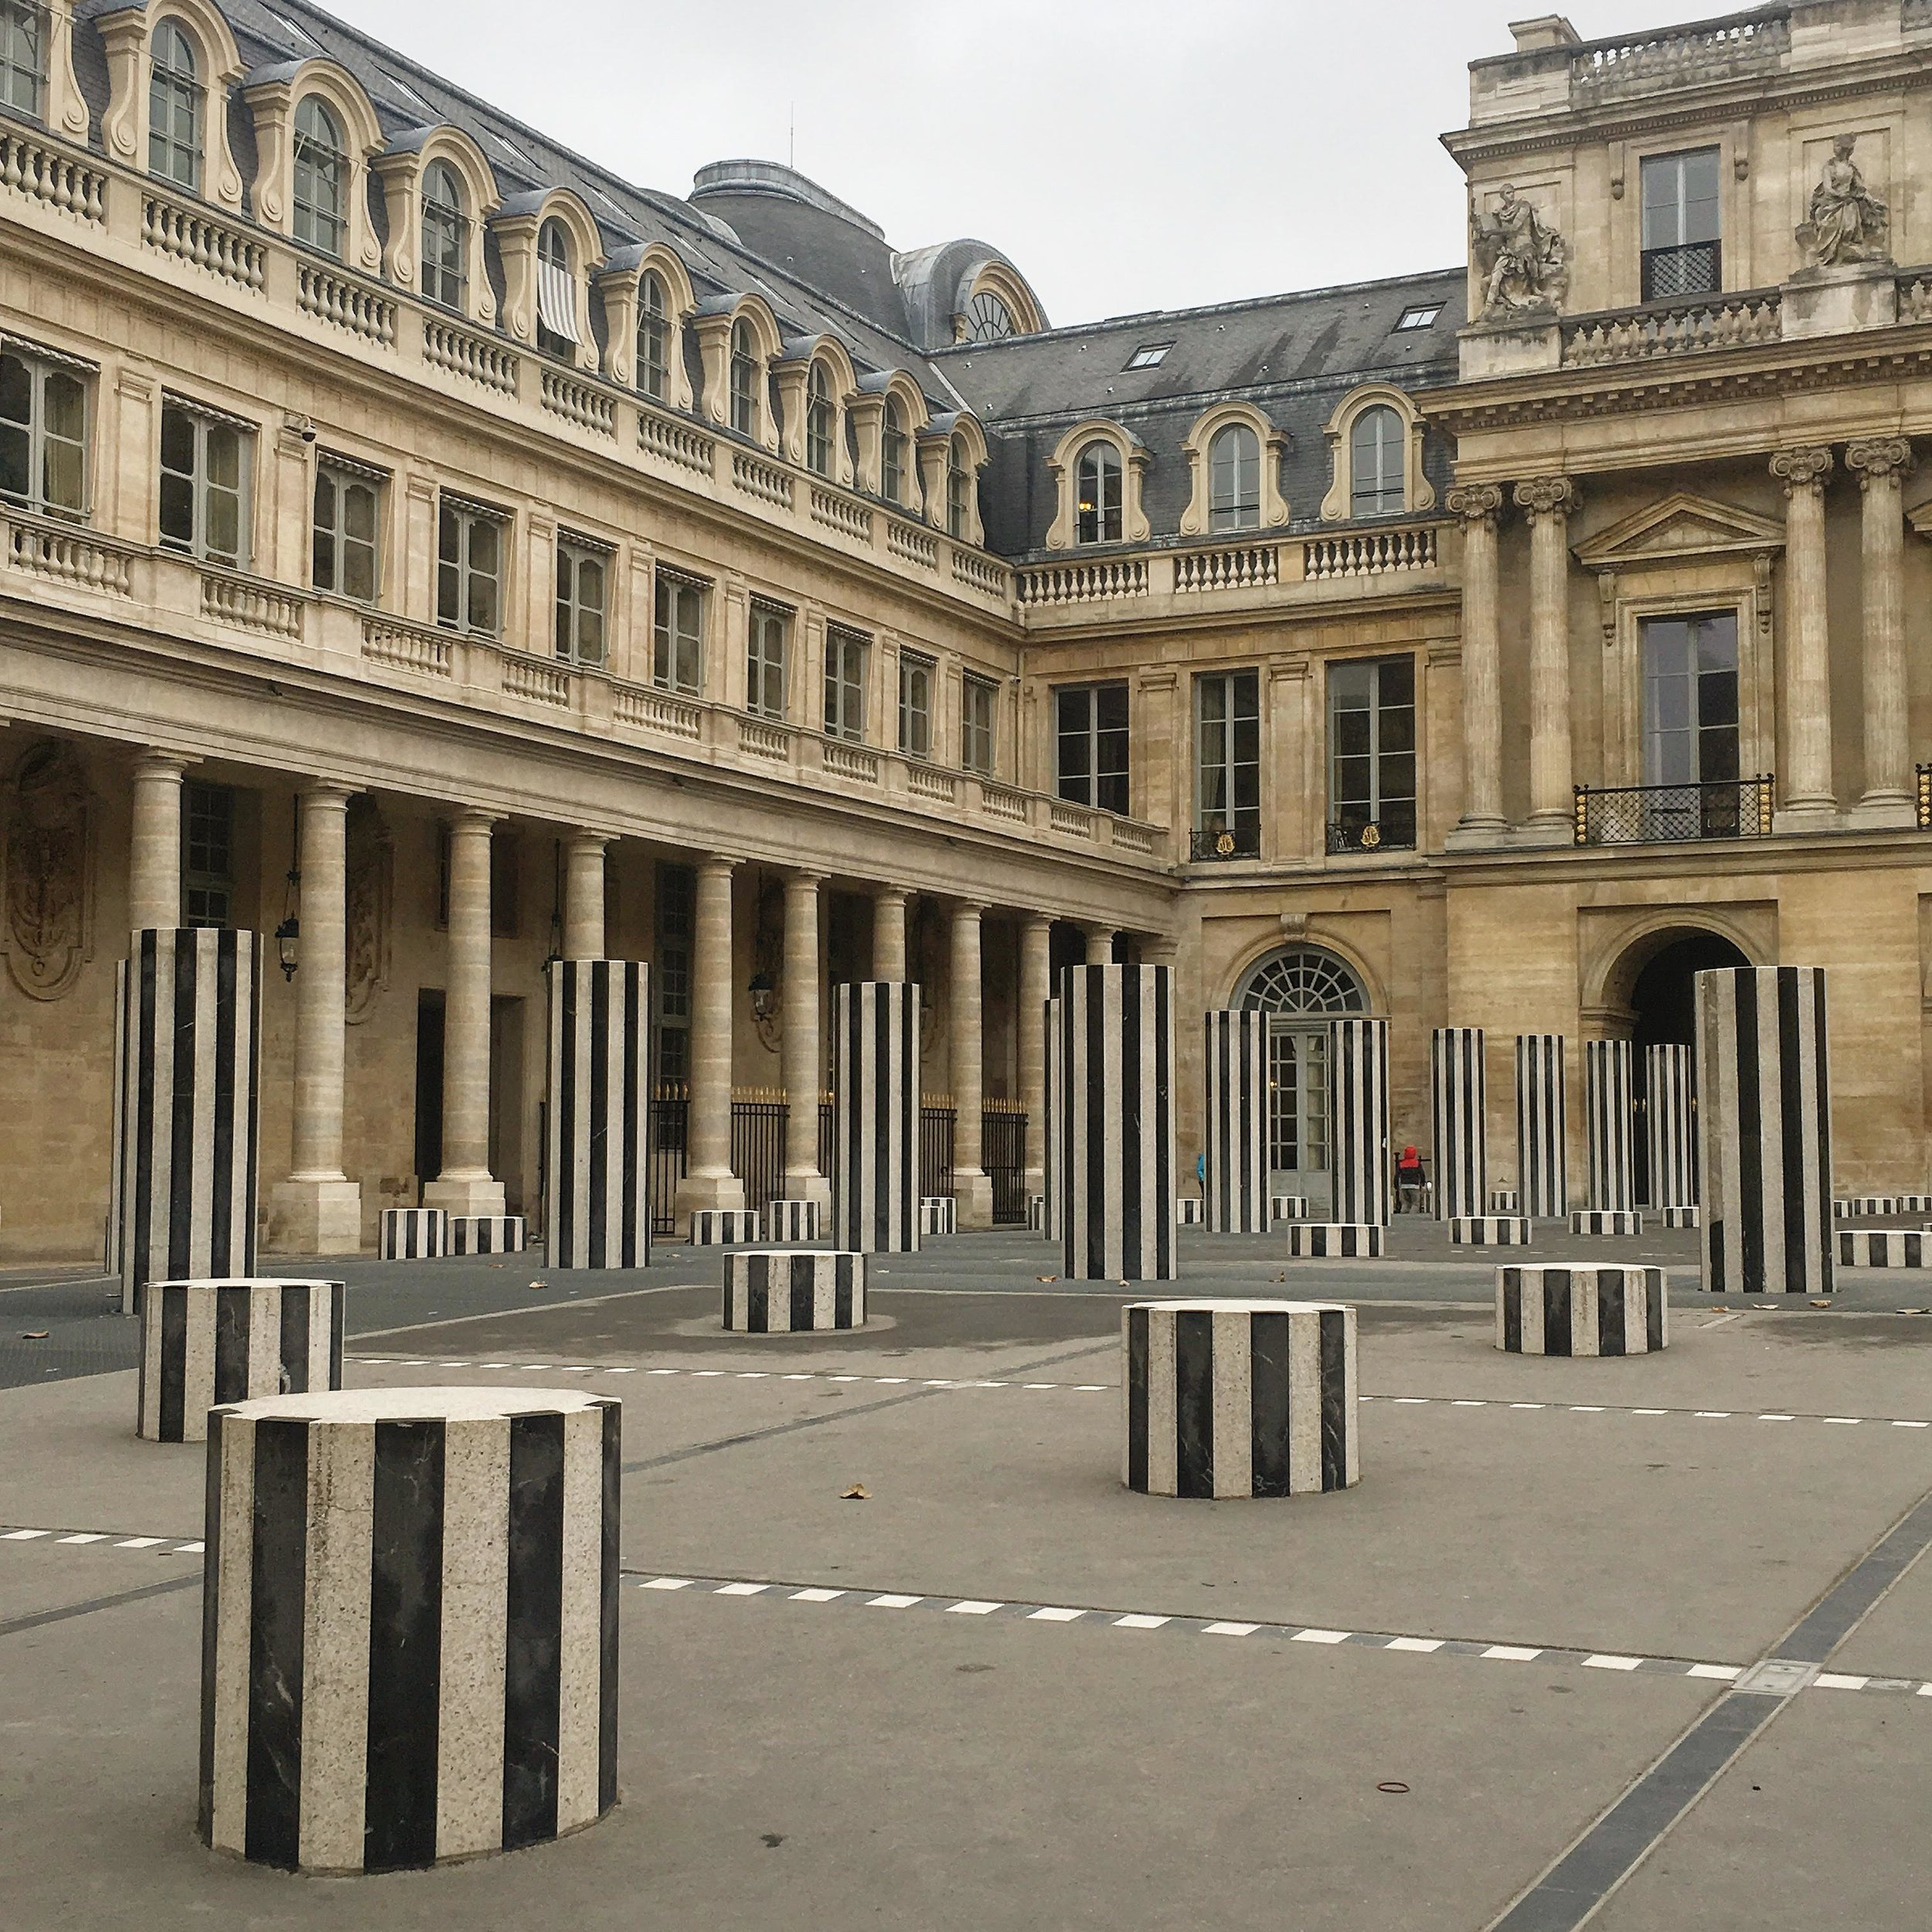 Colonnes de Buren at Palais Royal